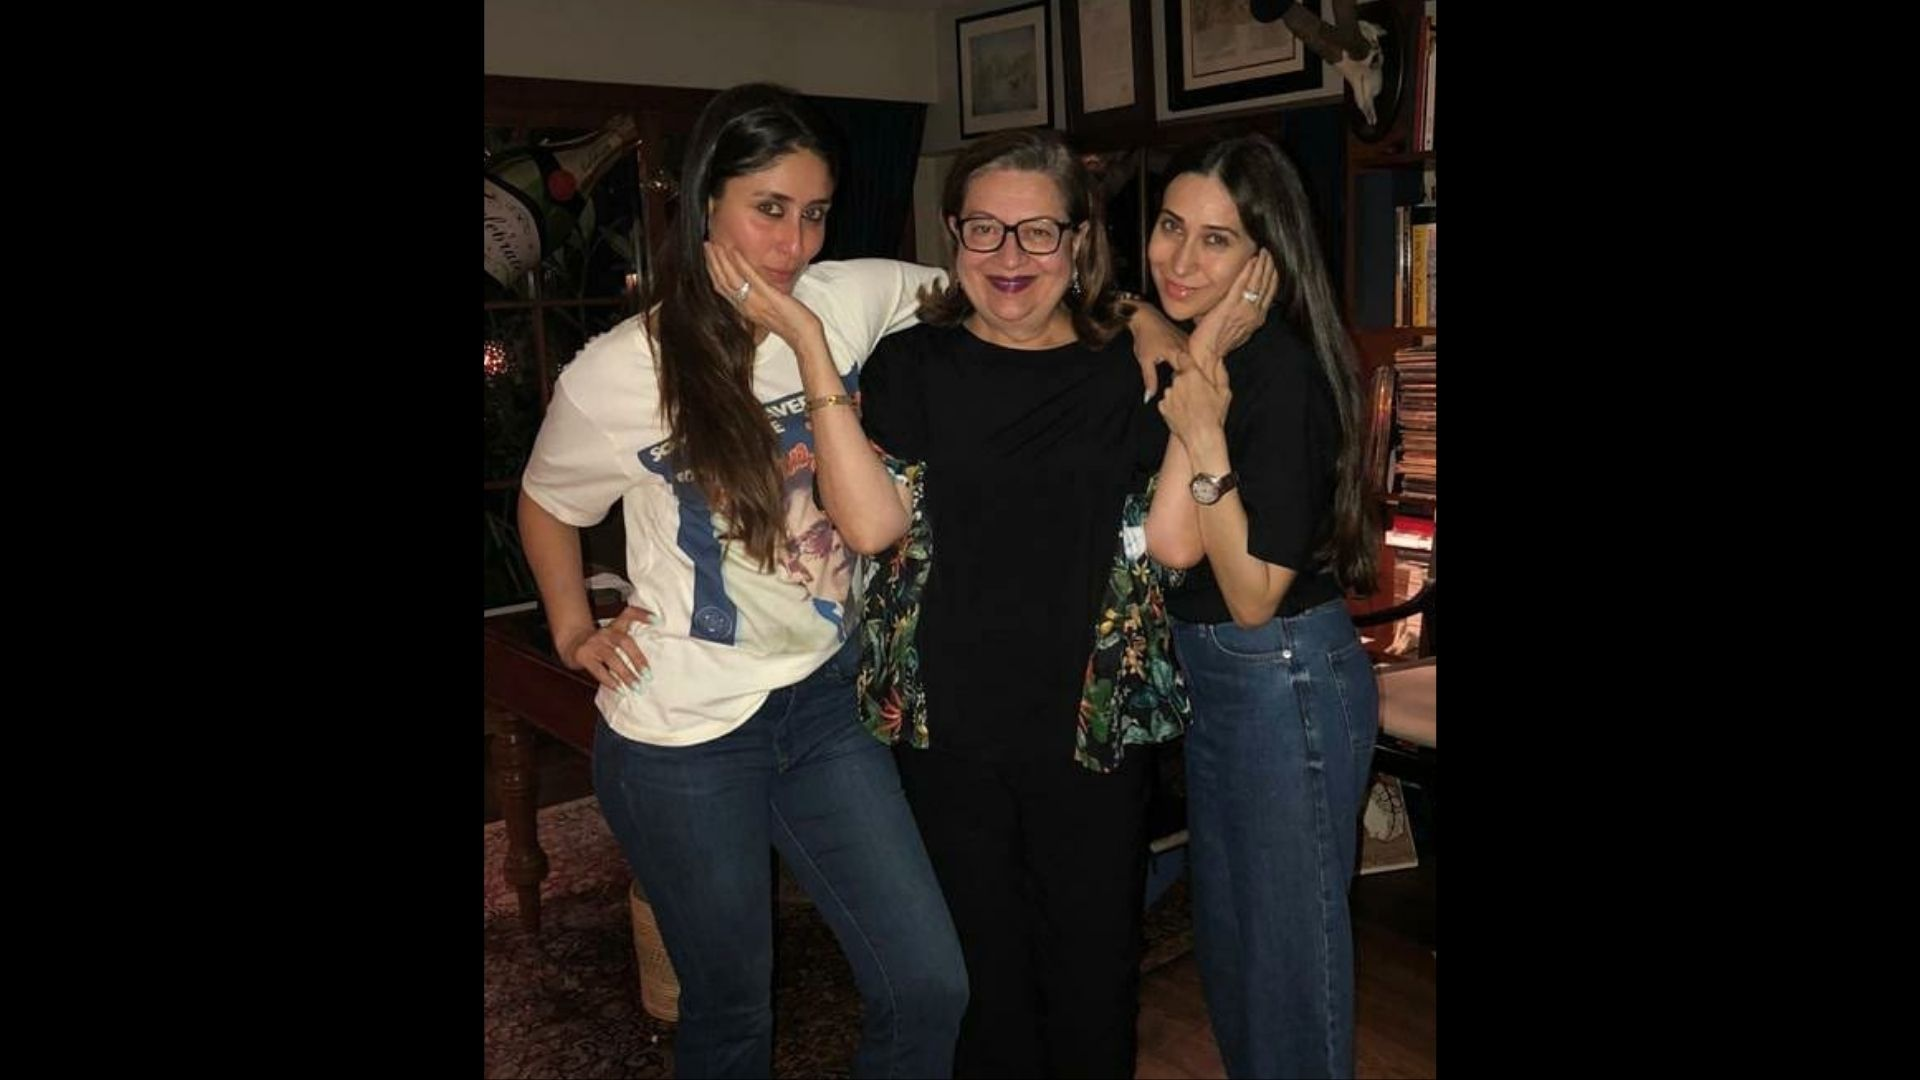 Kareena Kapoor Khan Repeats Her Two-Year-Old Pink Top During Her Visit To Mother Babita; We Still Can't Get Enough Of Her